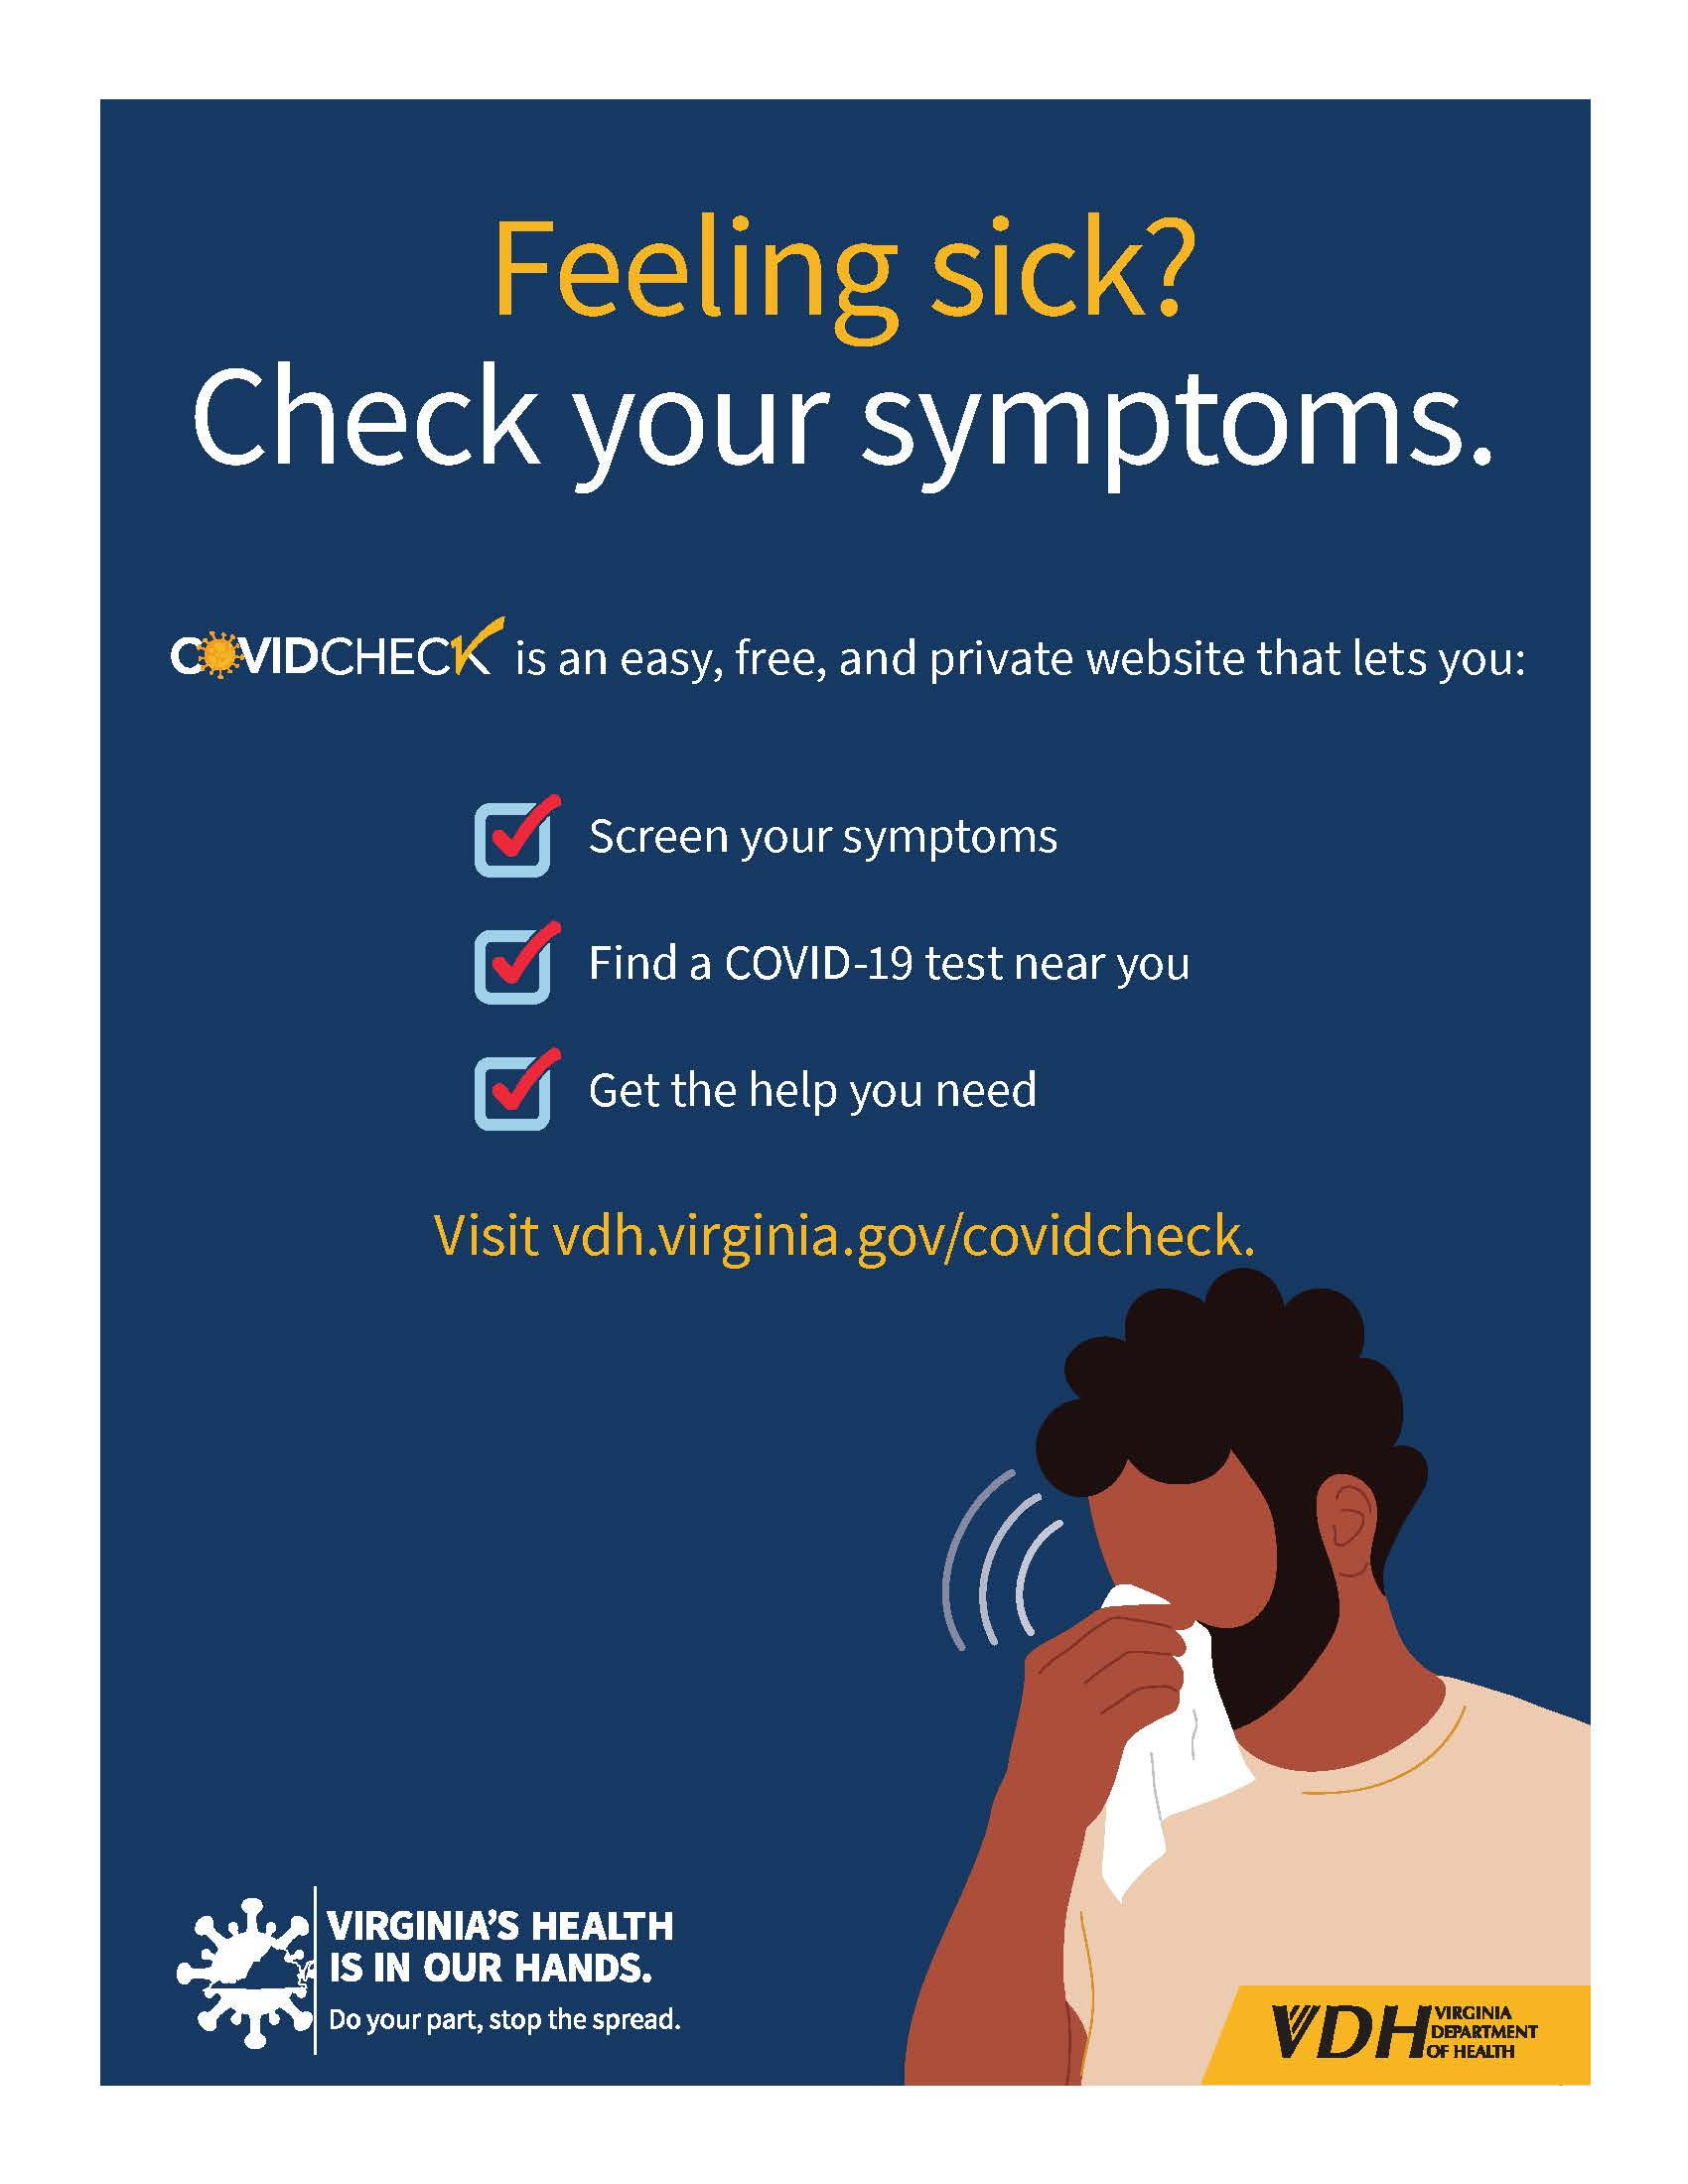 Check your symptoms blue background